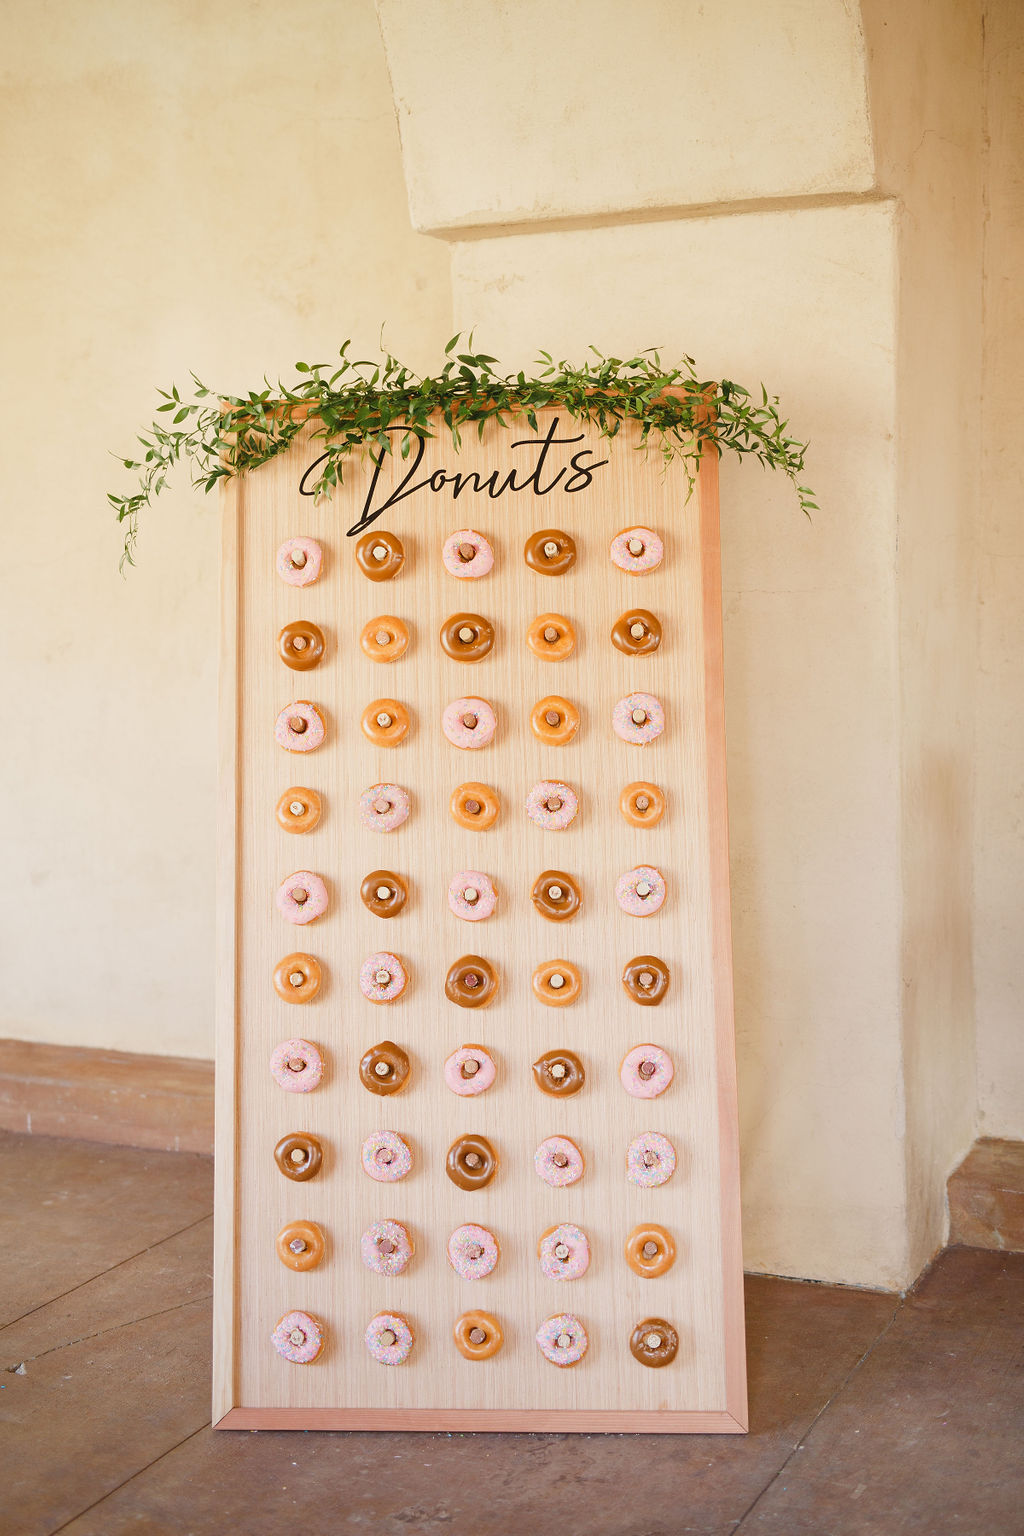 Donut wall by Brier Rose Design at flower crown workshop in southern California by Love Sparkle Pretty to provide clean water for World Vision